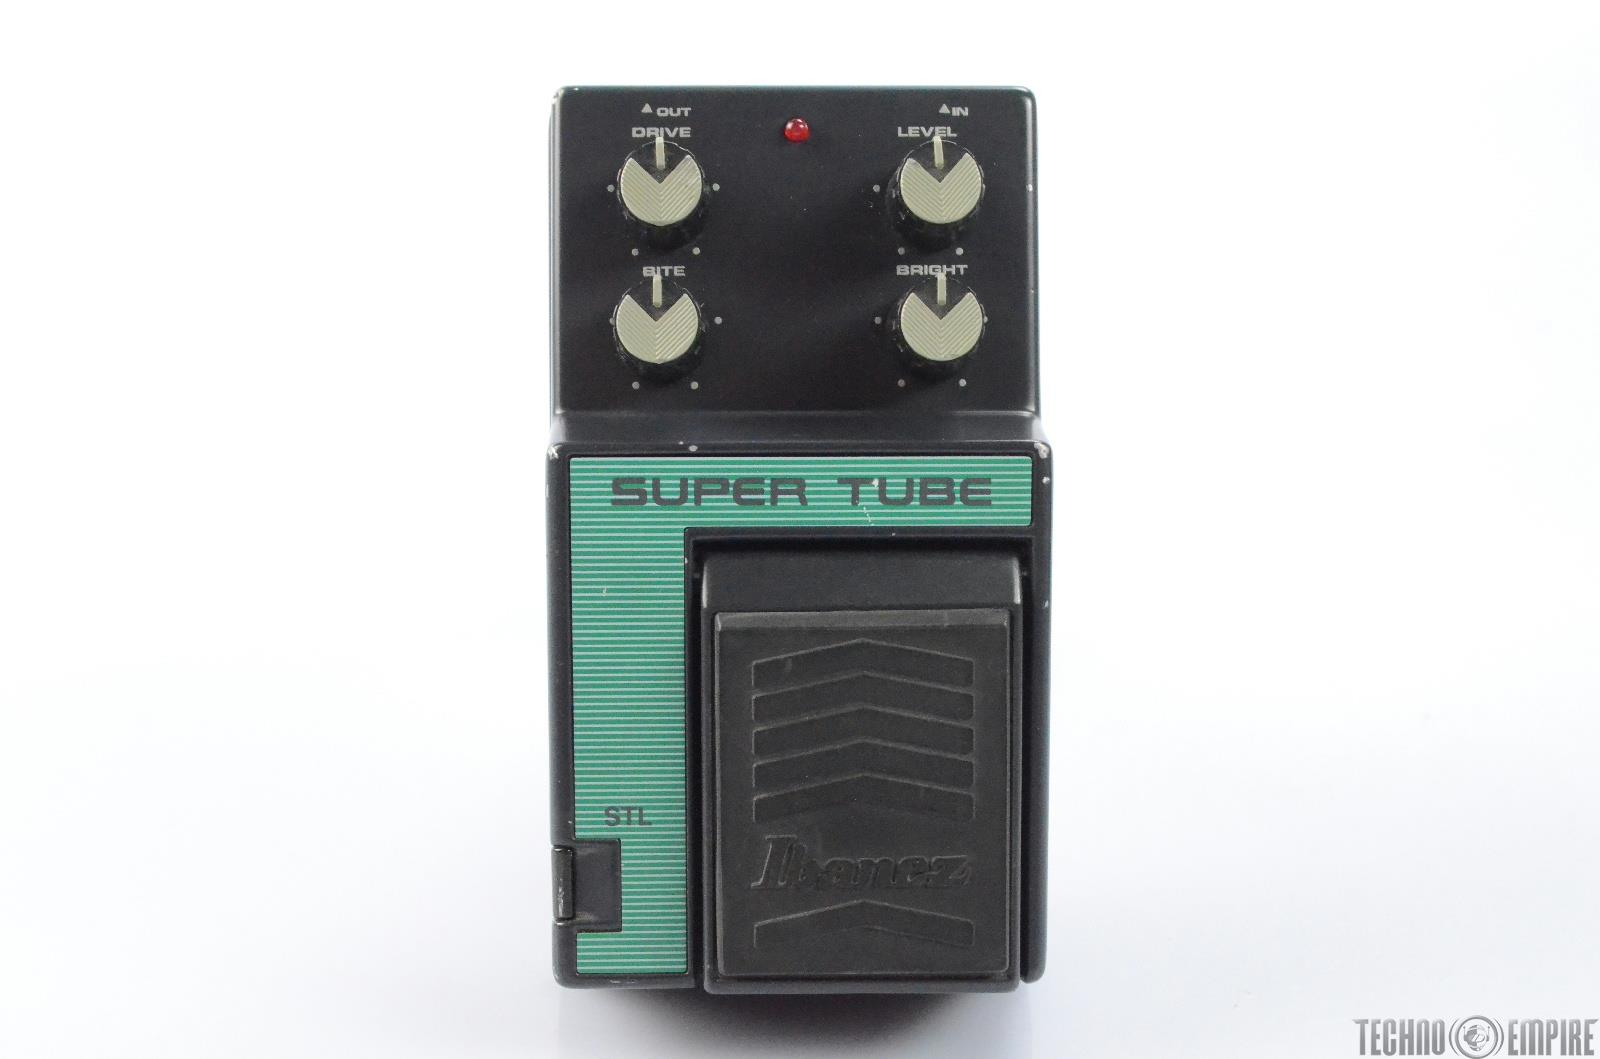 Ibanez STL Super Tube Overdrive Effect Pedal w/ Cables Fairfax Recordings #27853